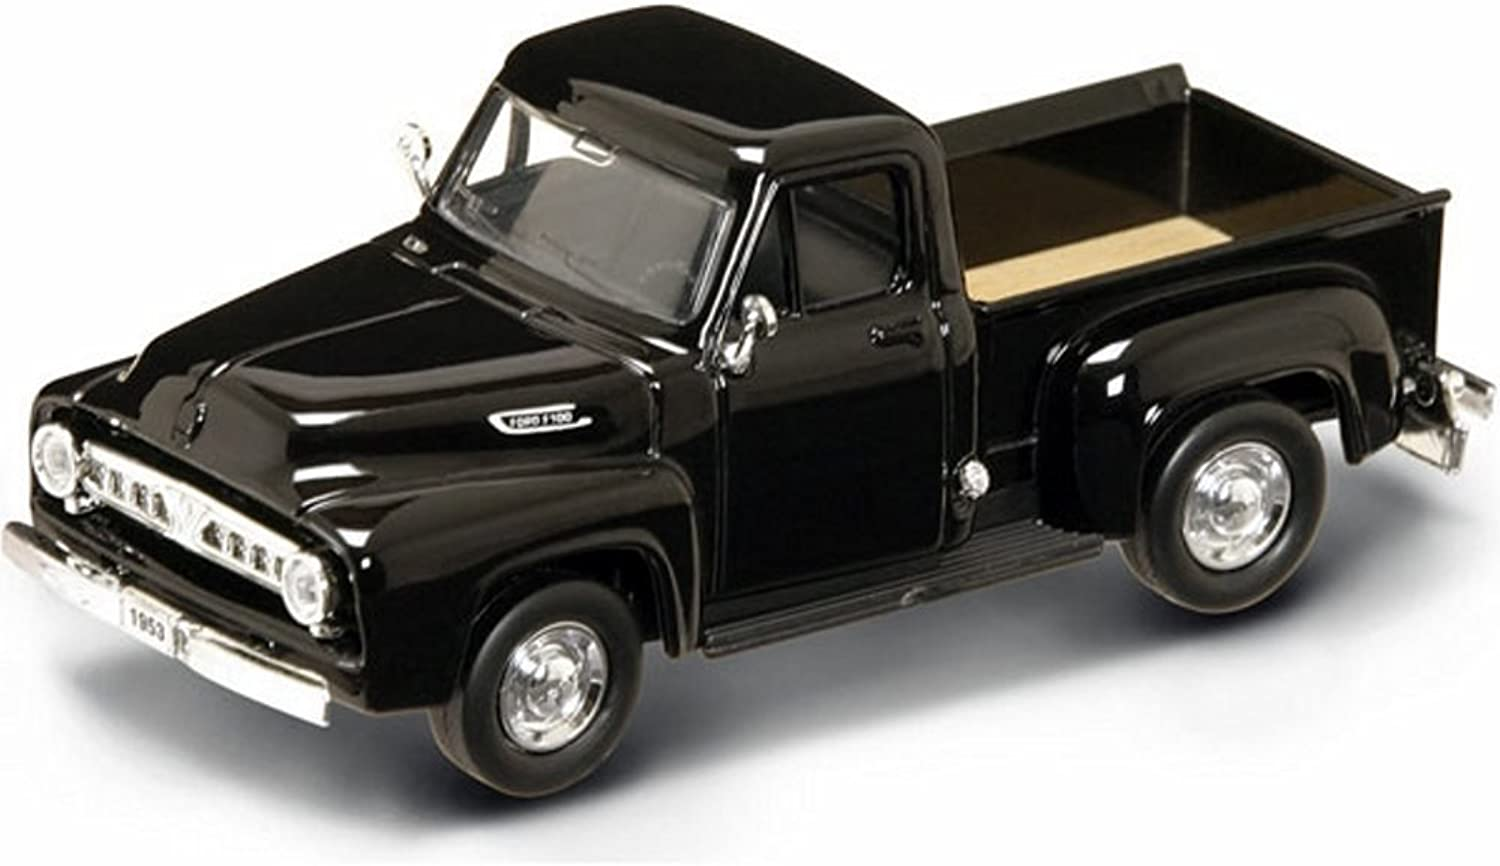 1953 Ford F100 Pick Up Truck Black 1 43 by Yat Ming 94204 by Road Signature